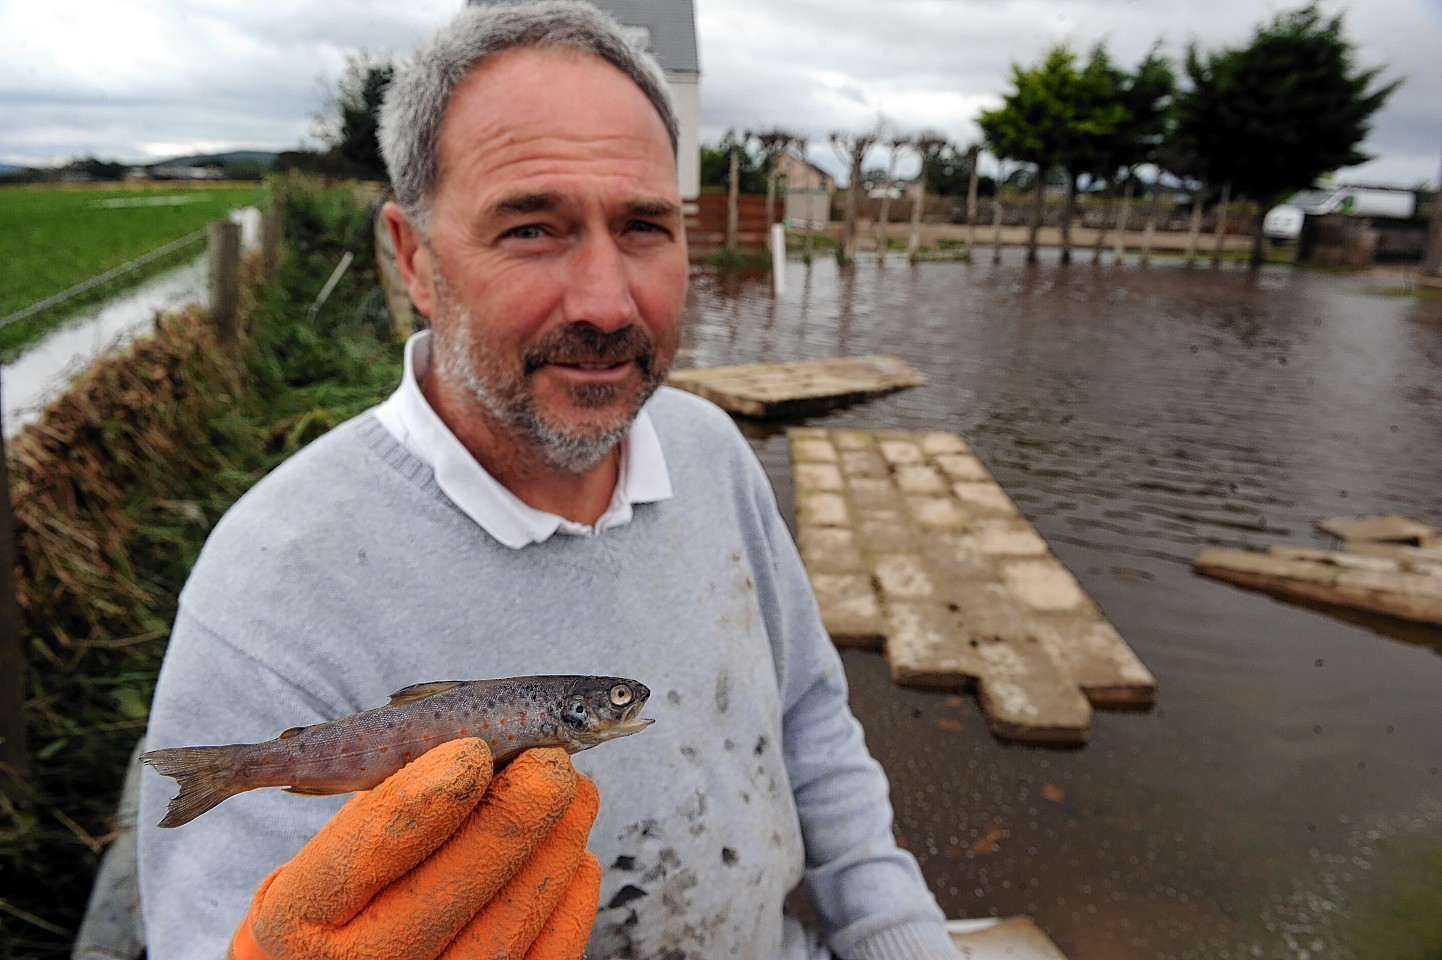 Graeme Lees shows the salmon parr he found in the flood water